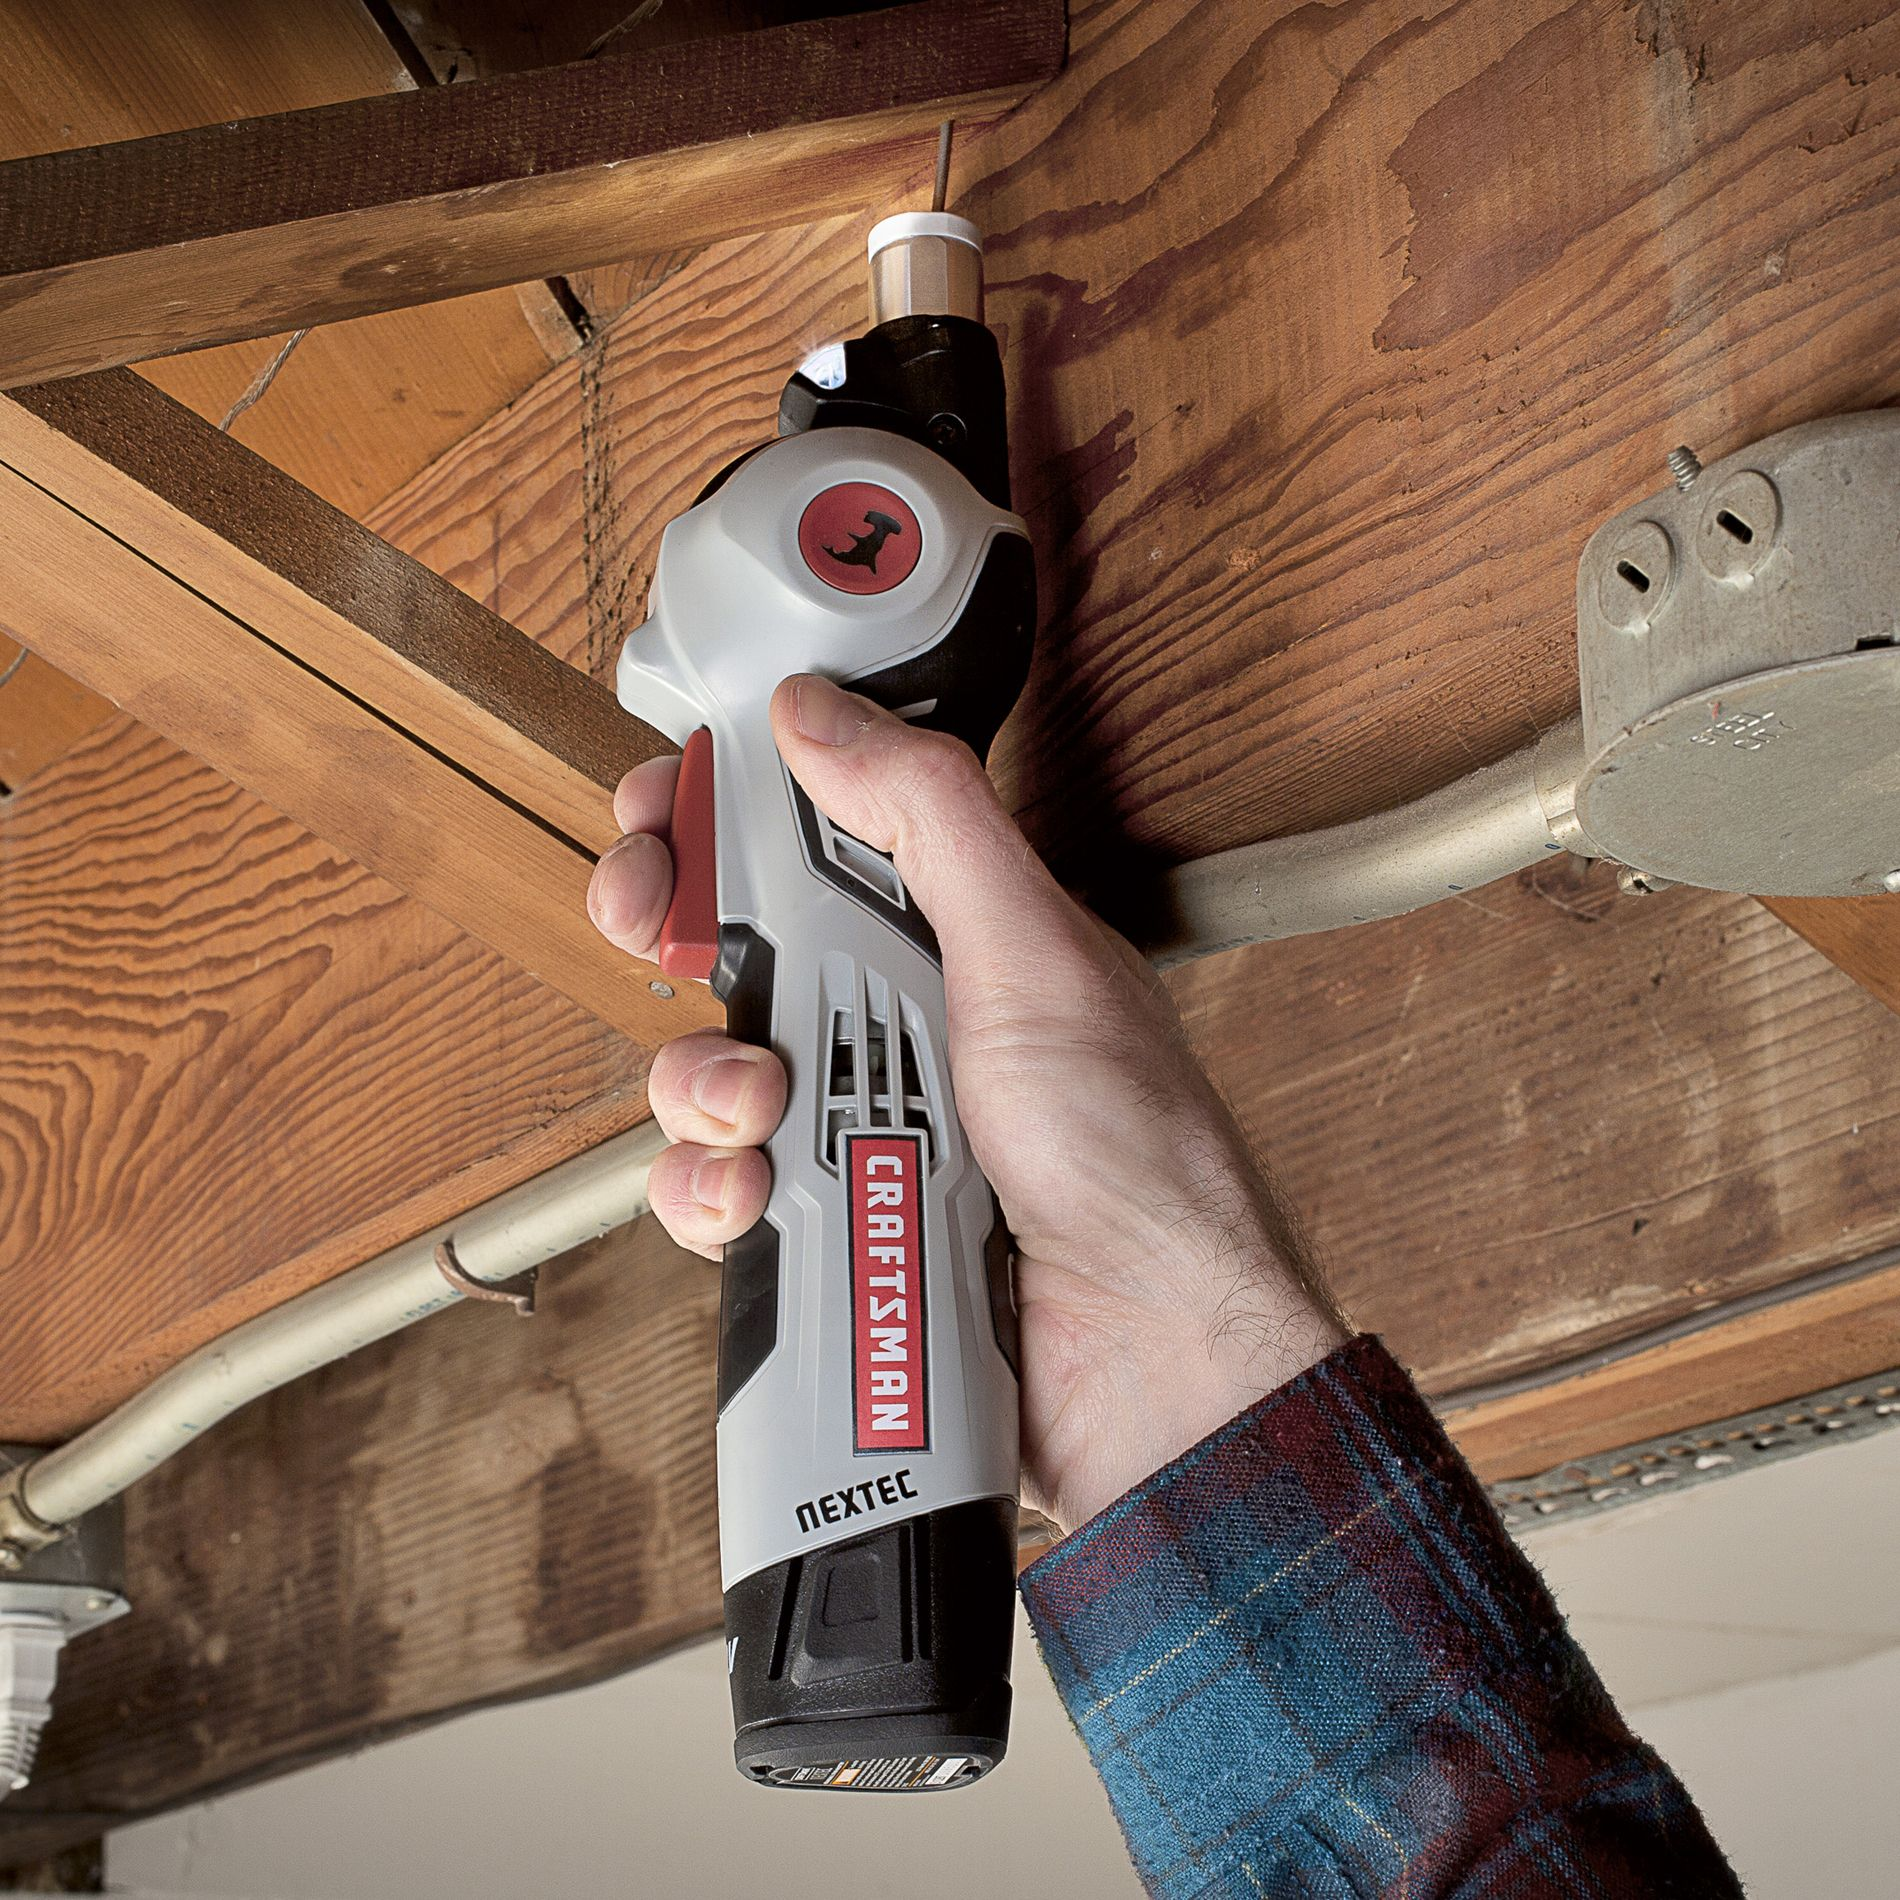 Craftsman NEXTEC 12.0 Volt  Hammerhead Auto Hammer with Rotating Head